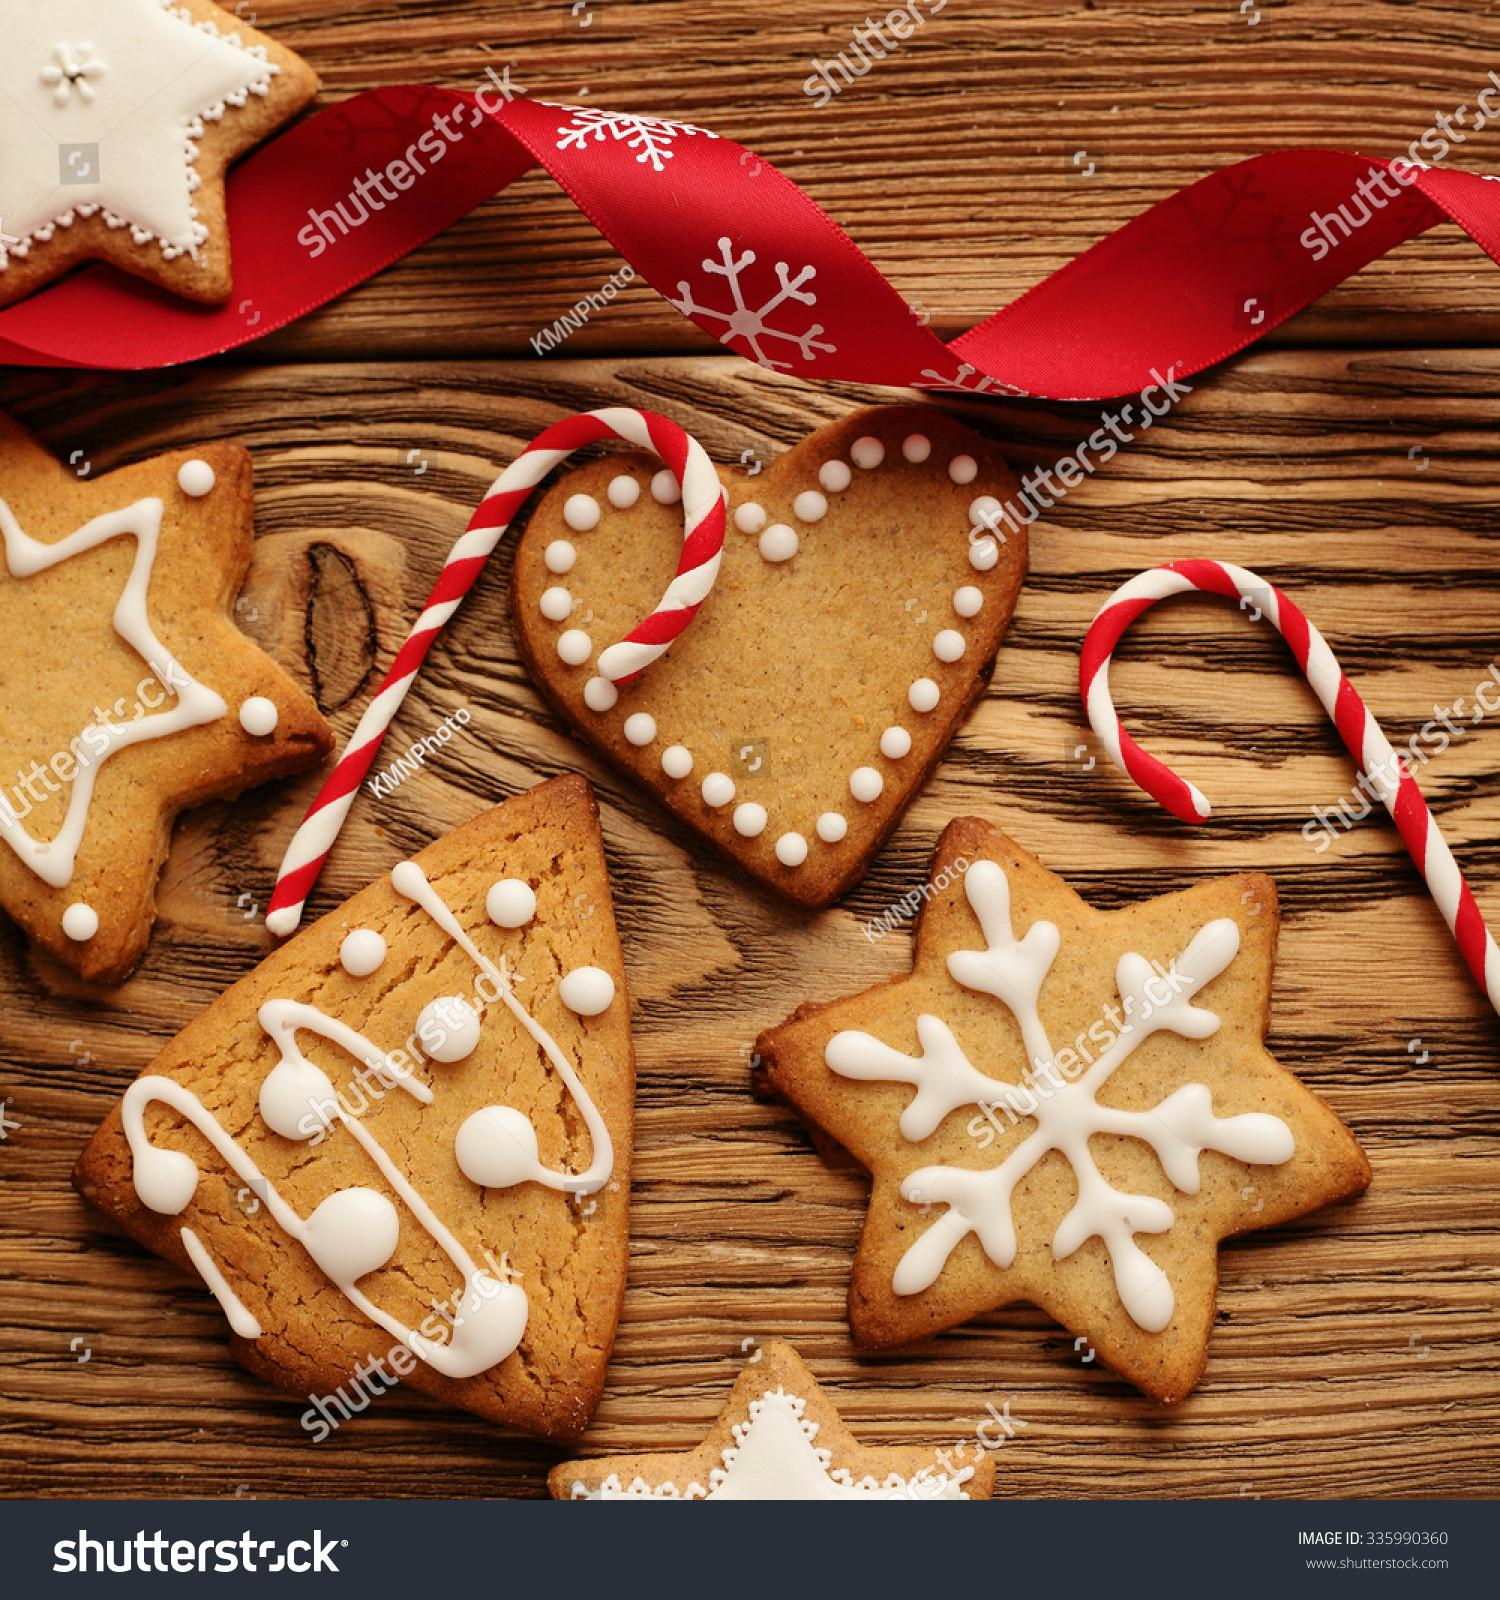 Homemade Christmas Gingerbread Cookies Wooden Stock